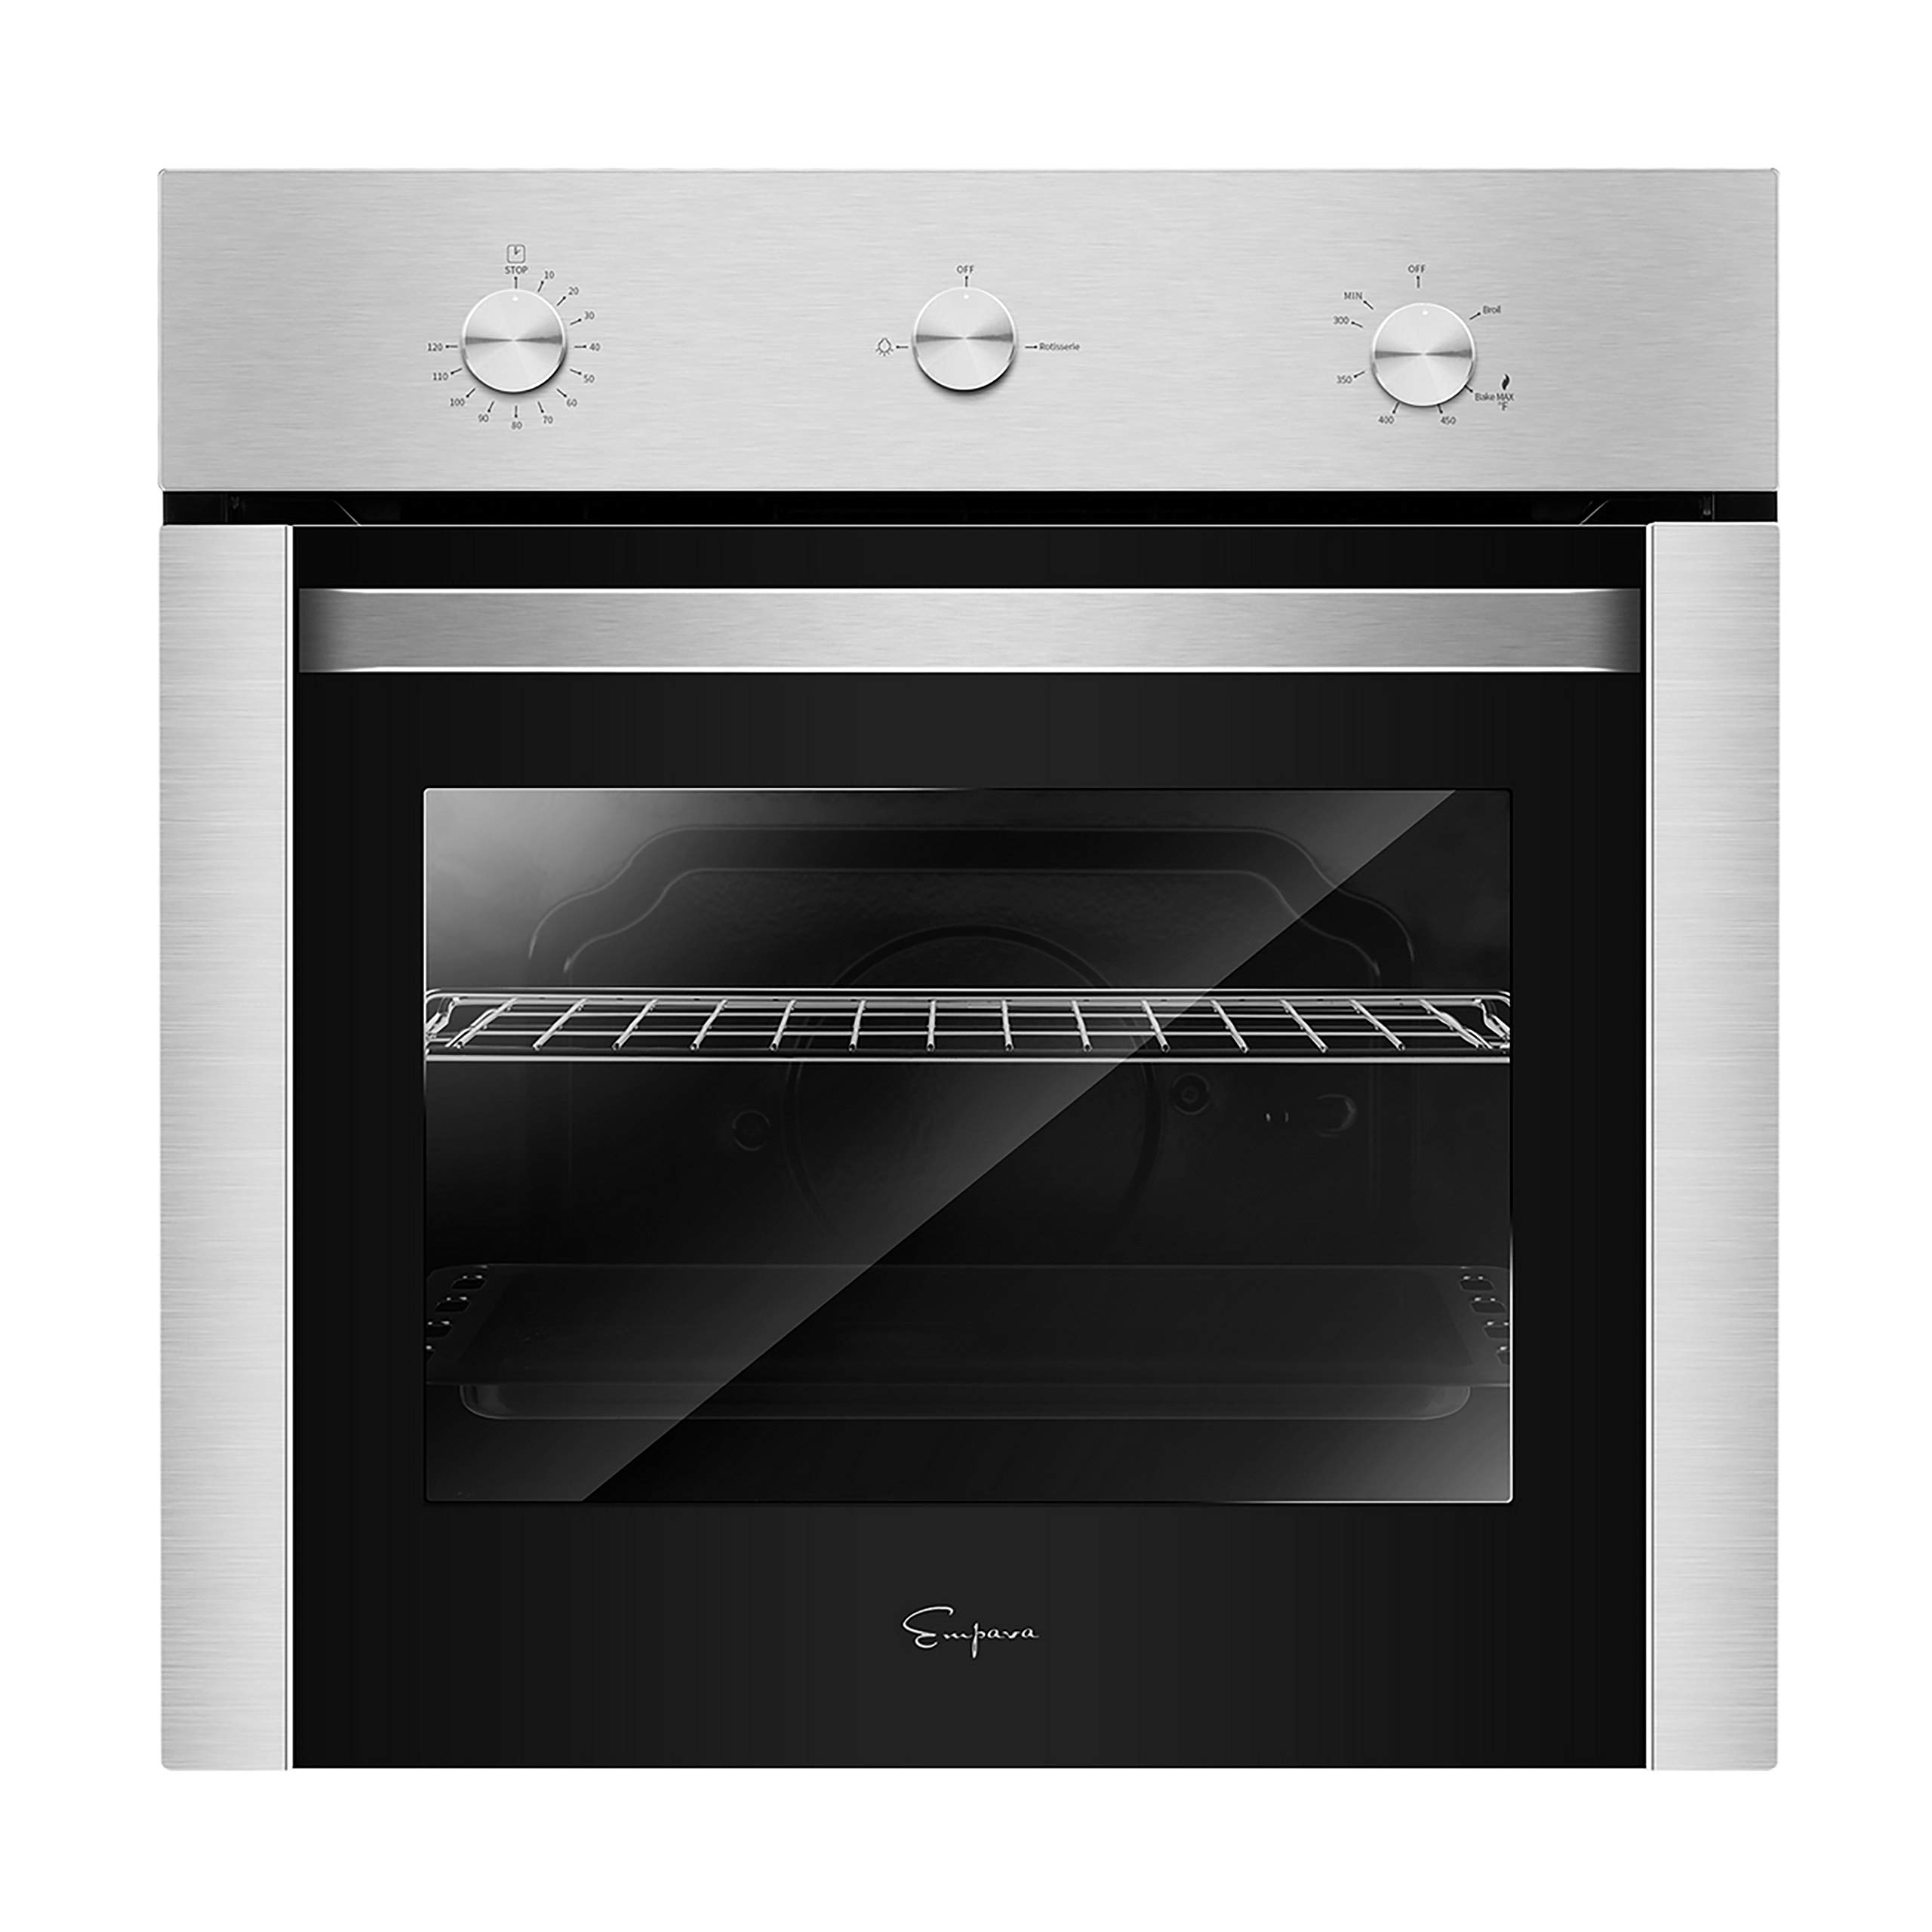 Empava 24'' Stainless Steel Built-in NG/LPG Convertible Broil/Rotisserie Function Under Counter Gas Single Wall Ovens EMPV-24XWOD04, 24 Inch by Empava